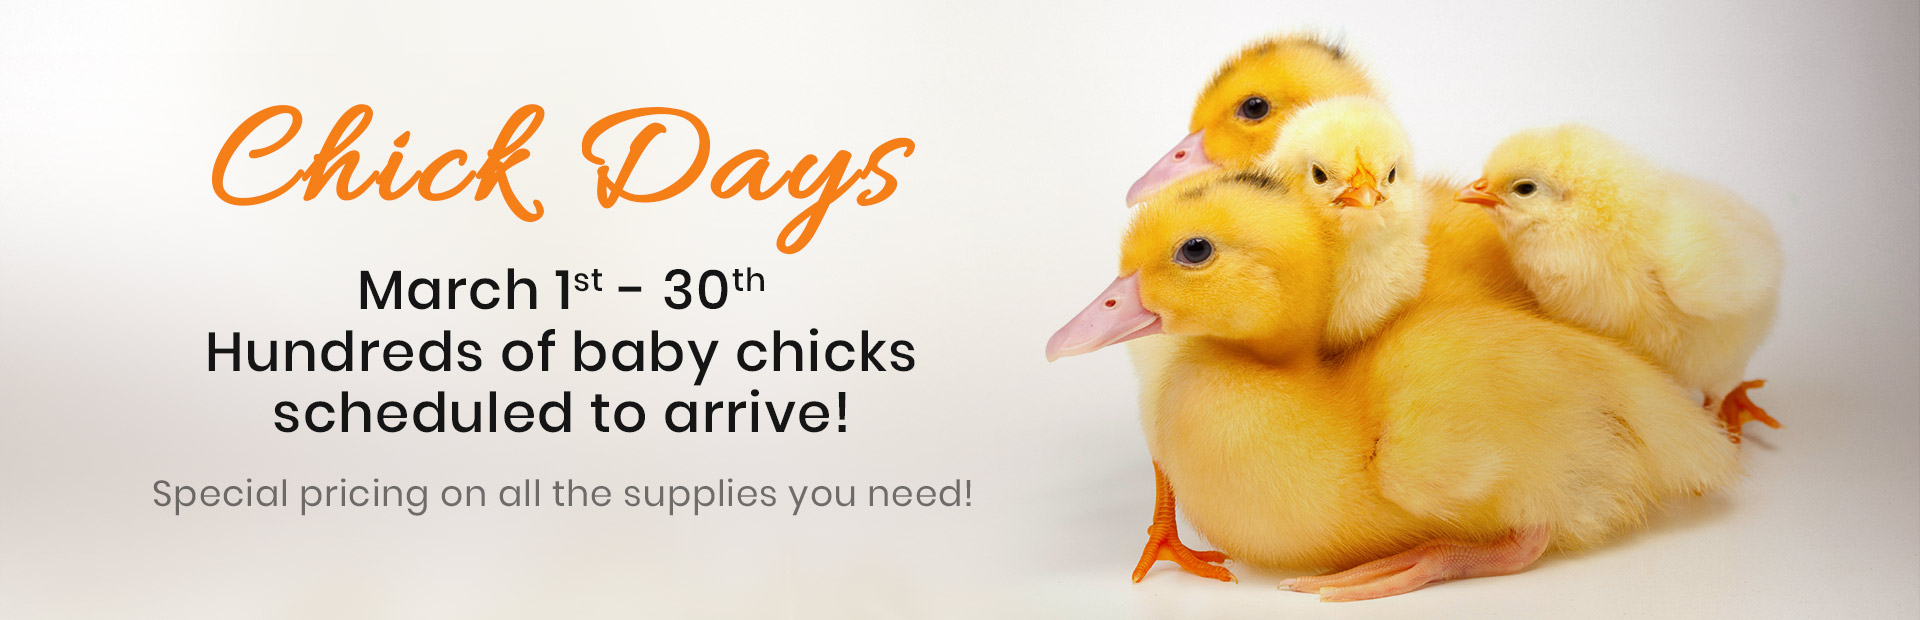 Join us March 1st - 30th for Chick Days! Click here for details.